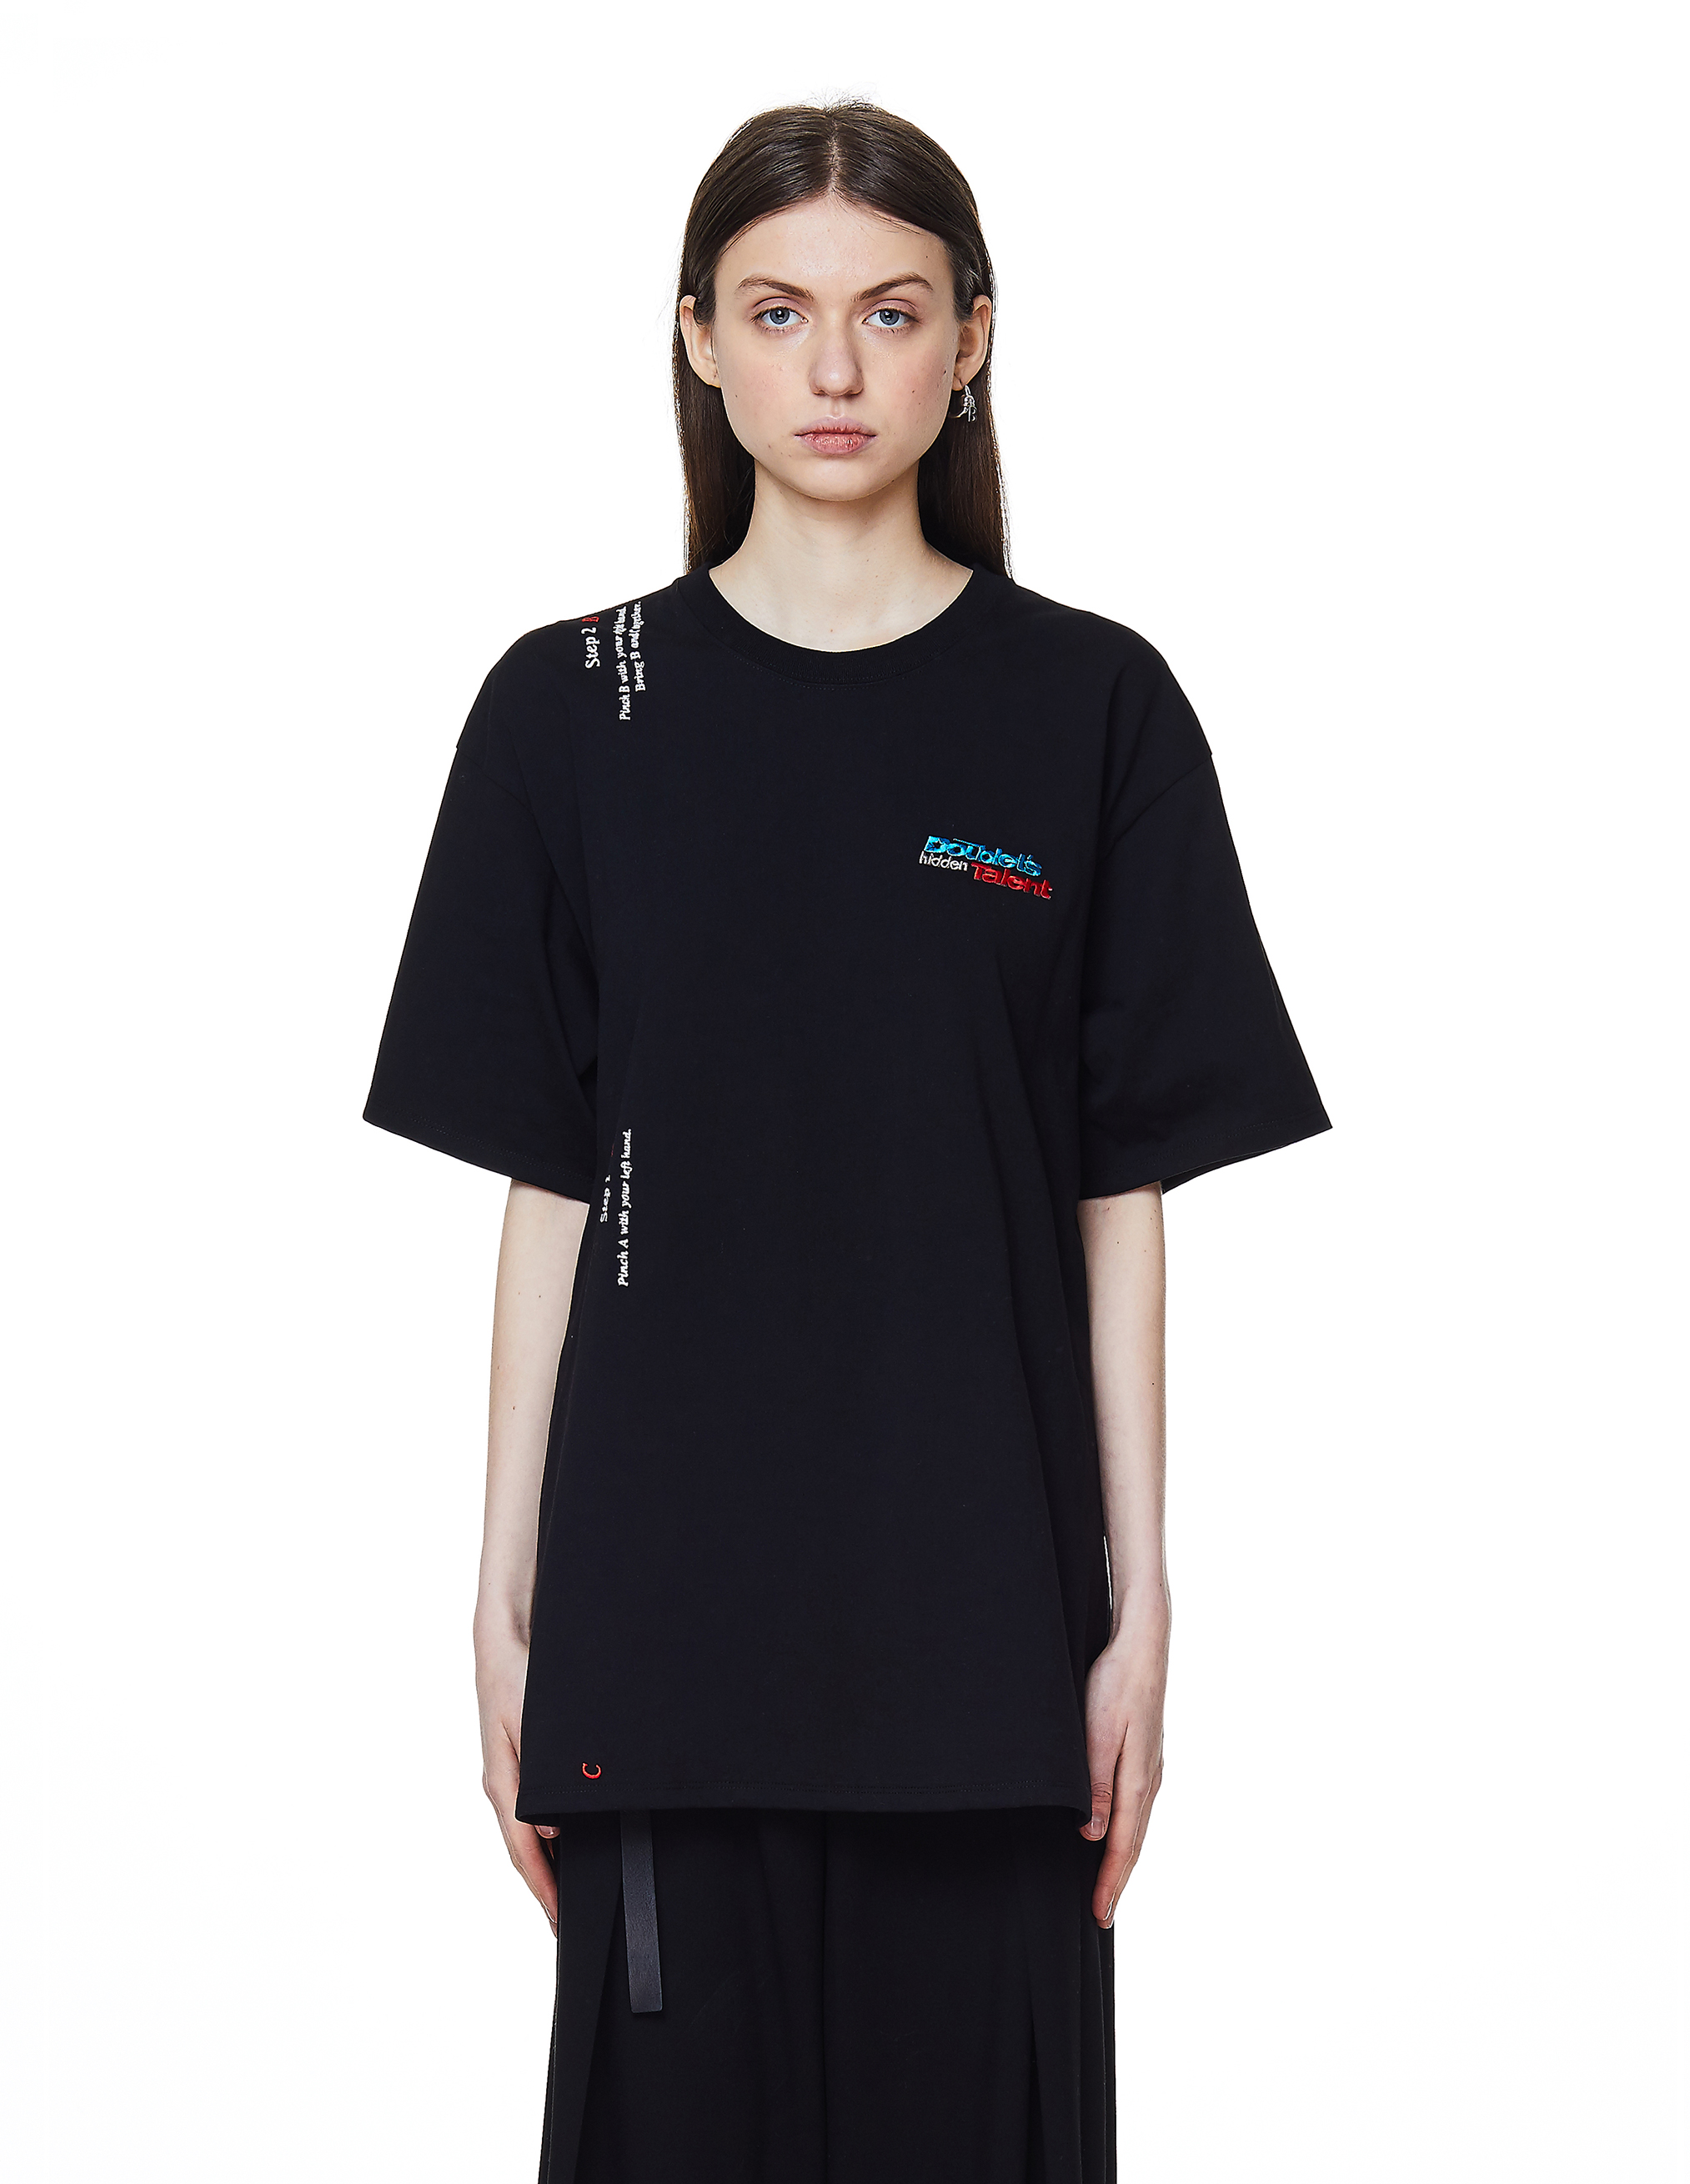 Doublet Black Instruction Embroidered T-Shirt